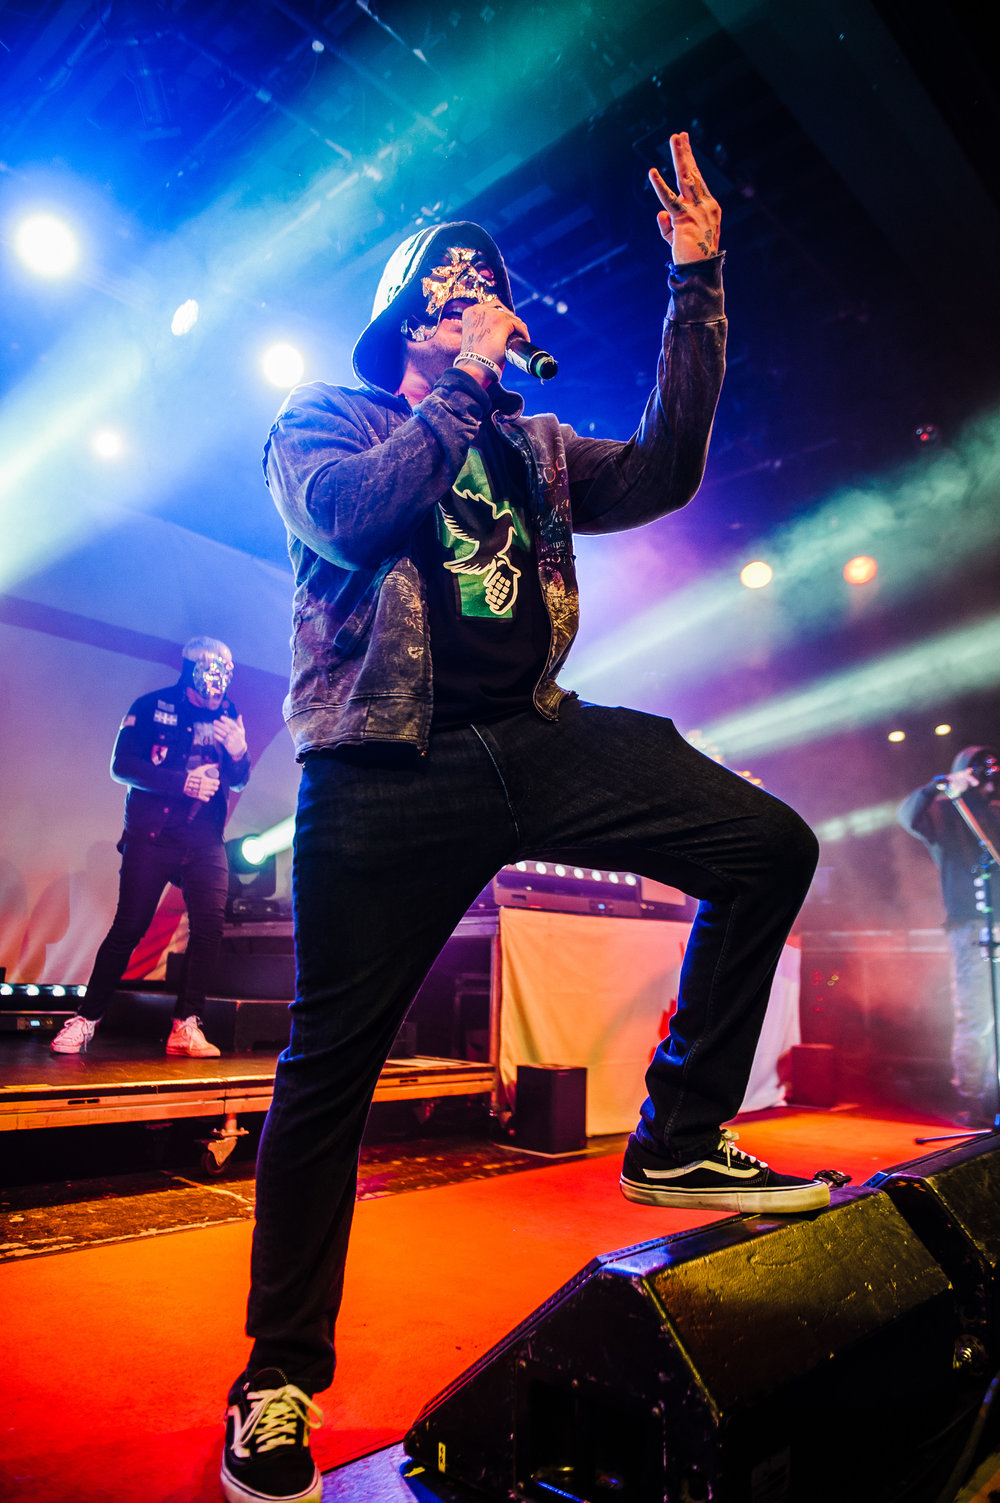 2_Hollywood_Undead-Commodore_Ballroom-Timothy_Nguyen-20171102 (7 of 16).jpg